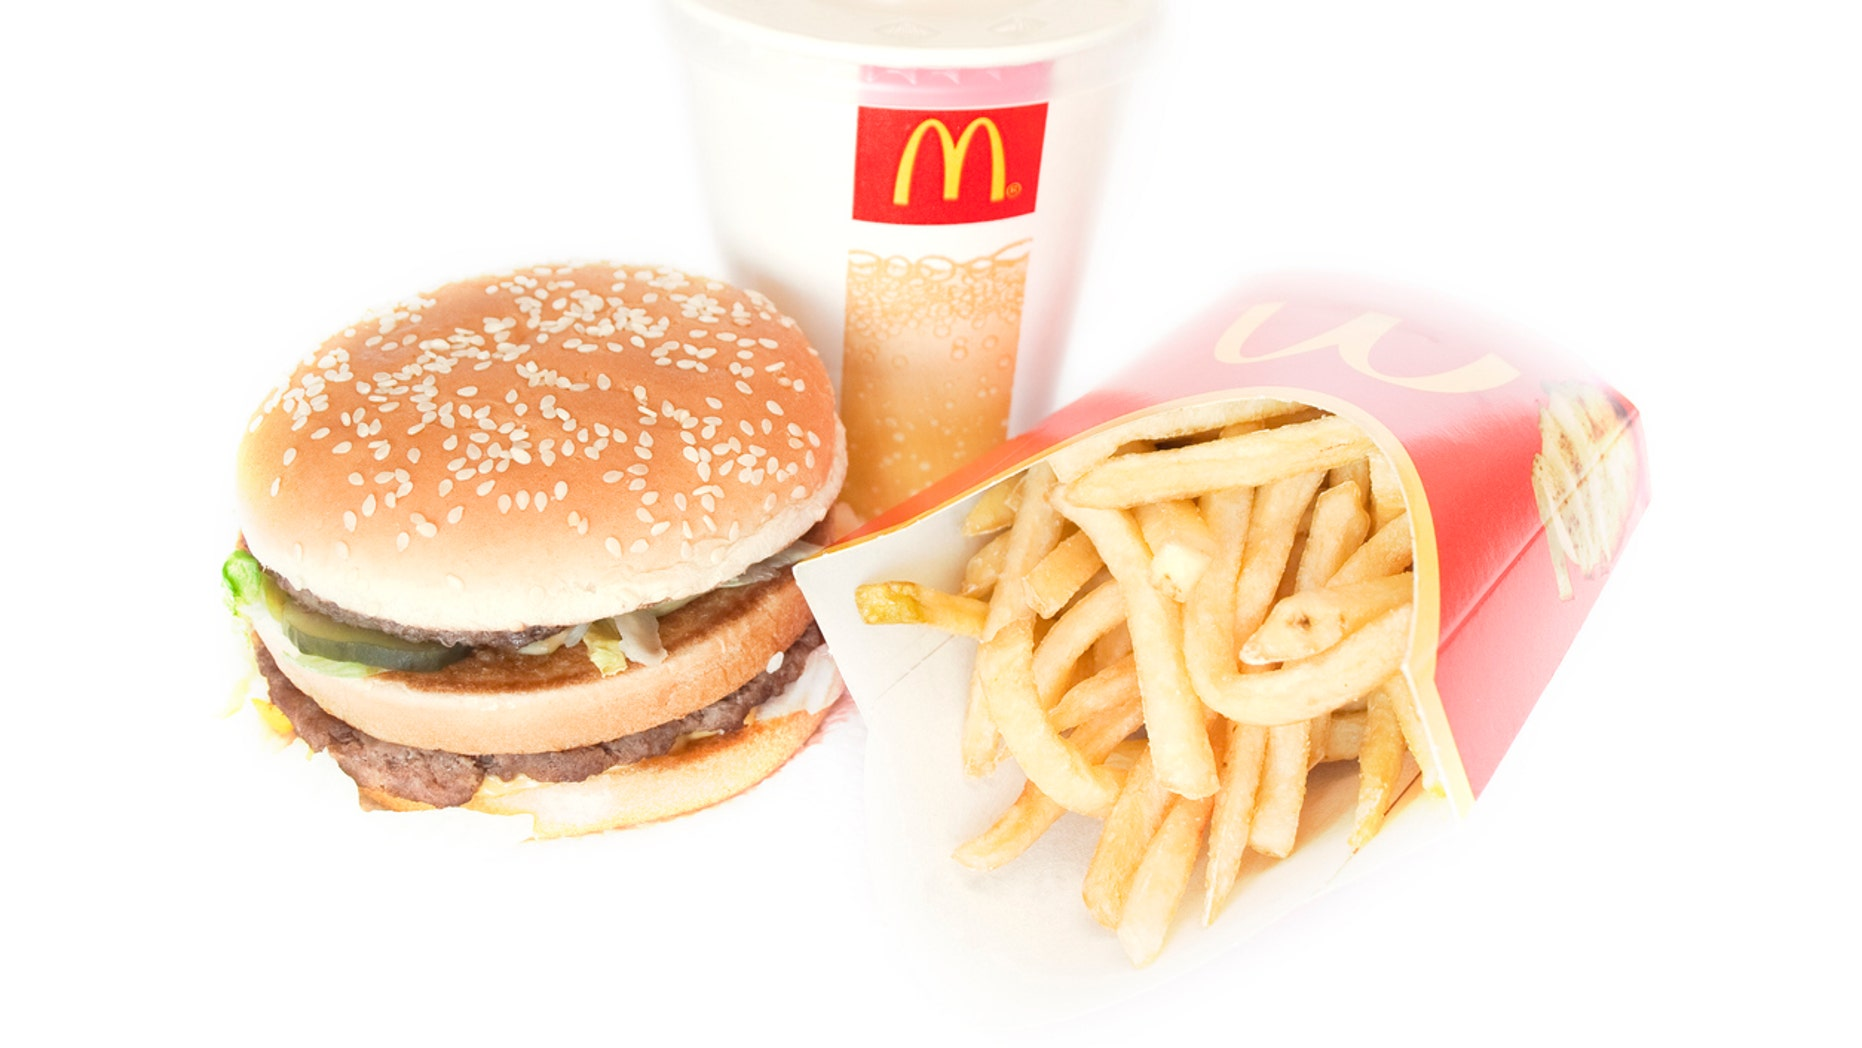 A drunk could threaten to fight with a leader after being served a large Mac of onions.